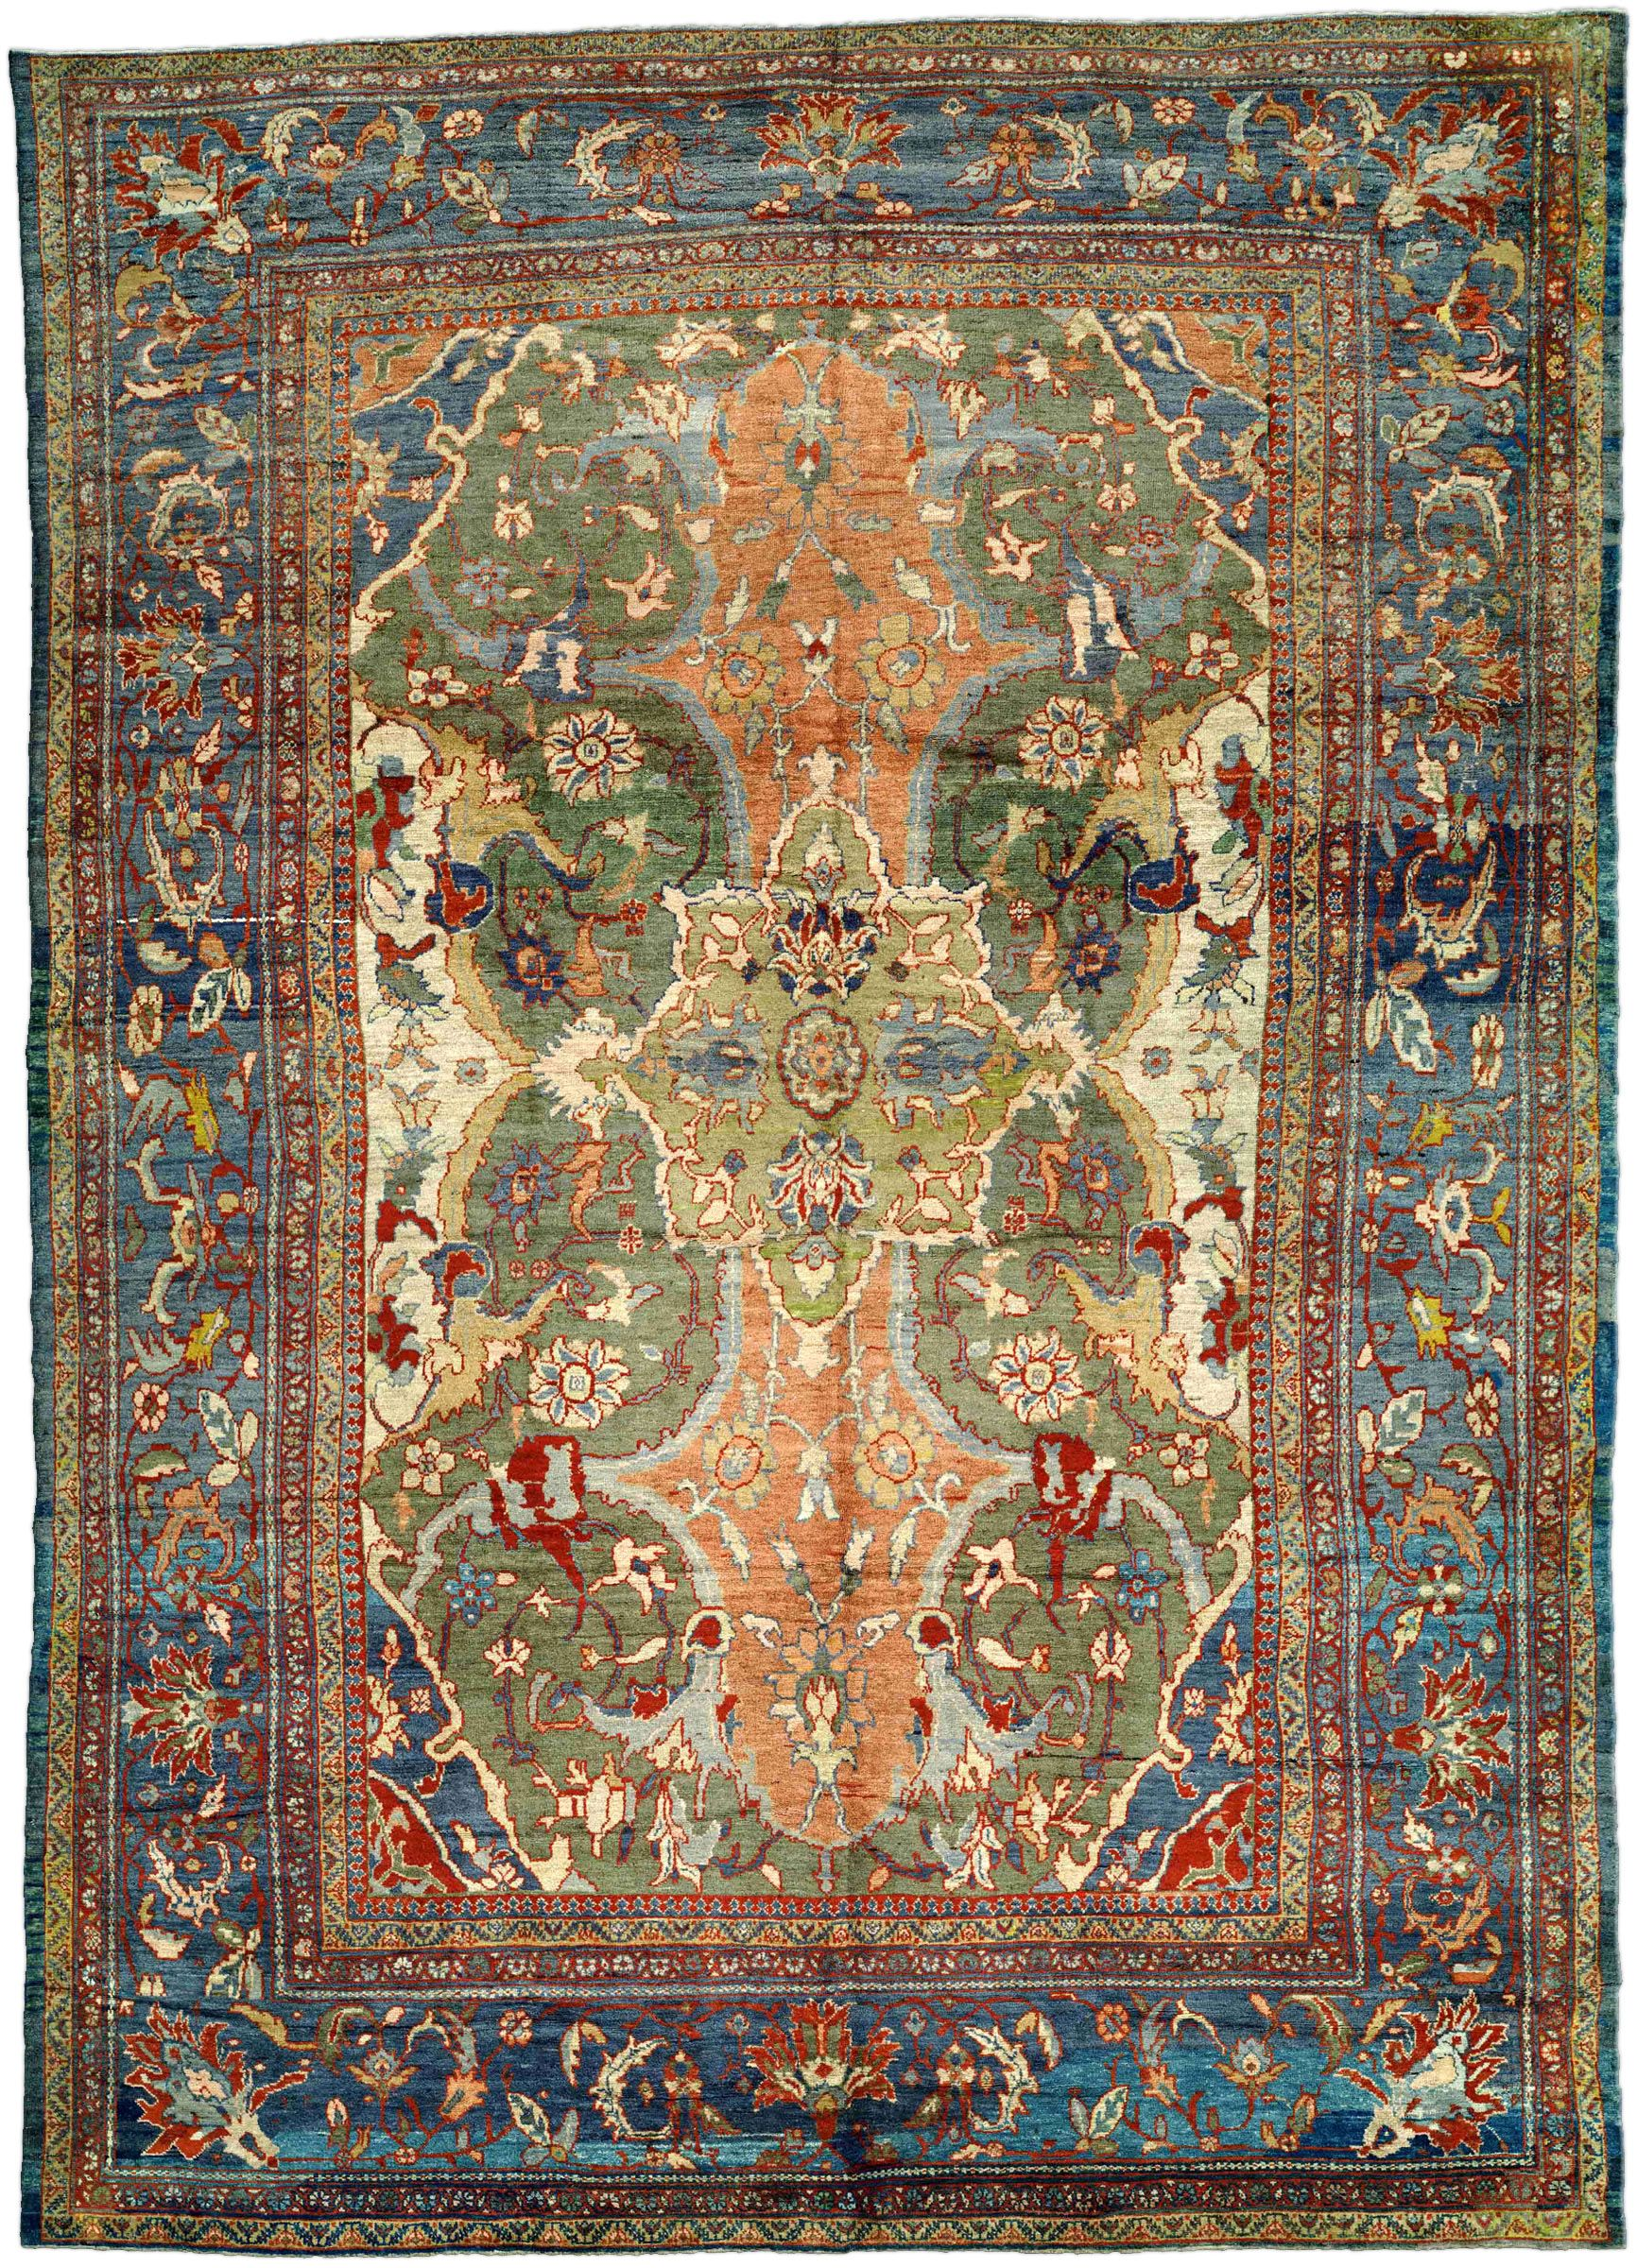 Antique Rugs Nyc A Persian Sultanabad Rug Bb3264 By Doris Leslie Blau An Unusual Late 19th Century Pers Antique Persian Rug Sultanabad Rug Antique Carpets